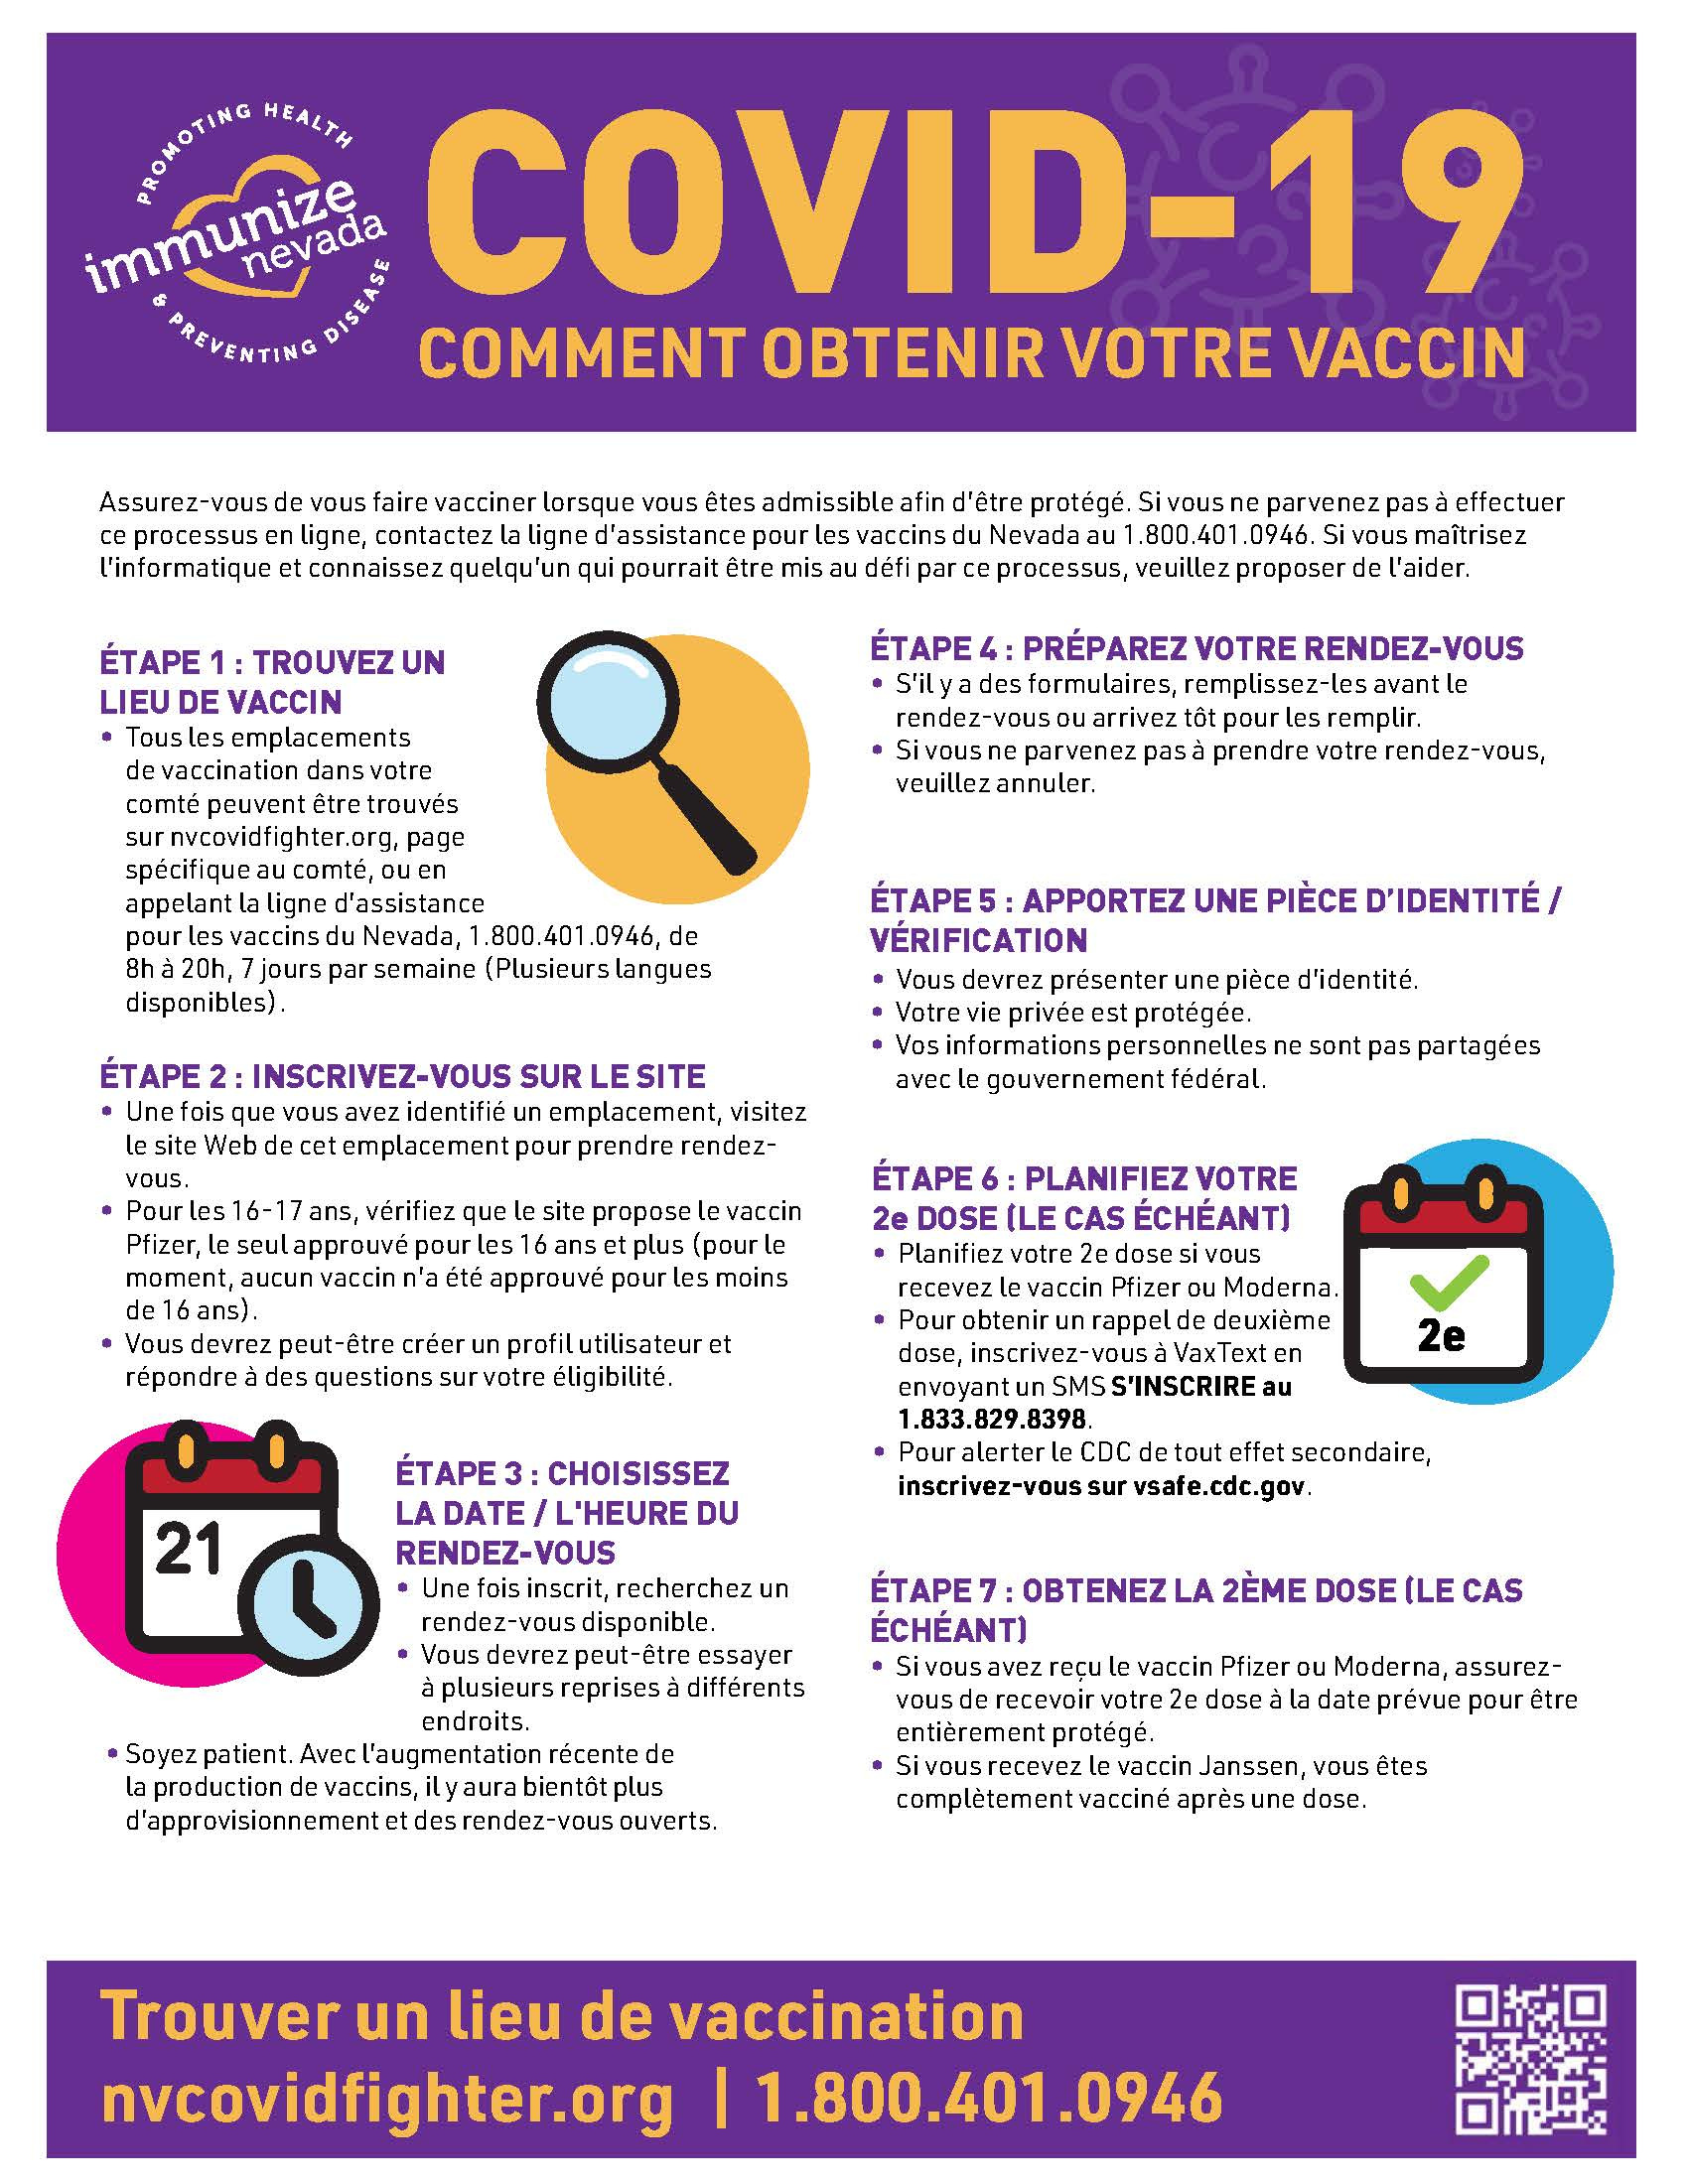 COVID-19 Vaccine Appointment Steps Flyer_FR_v1